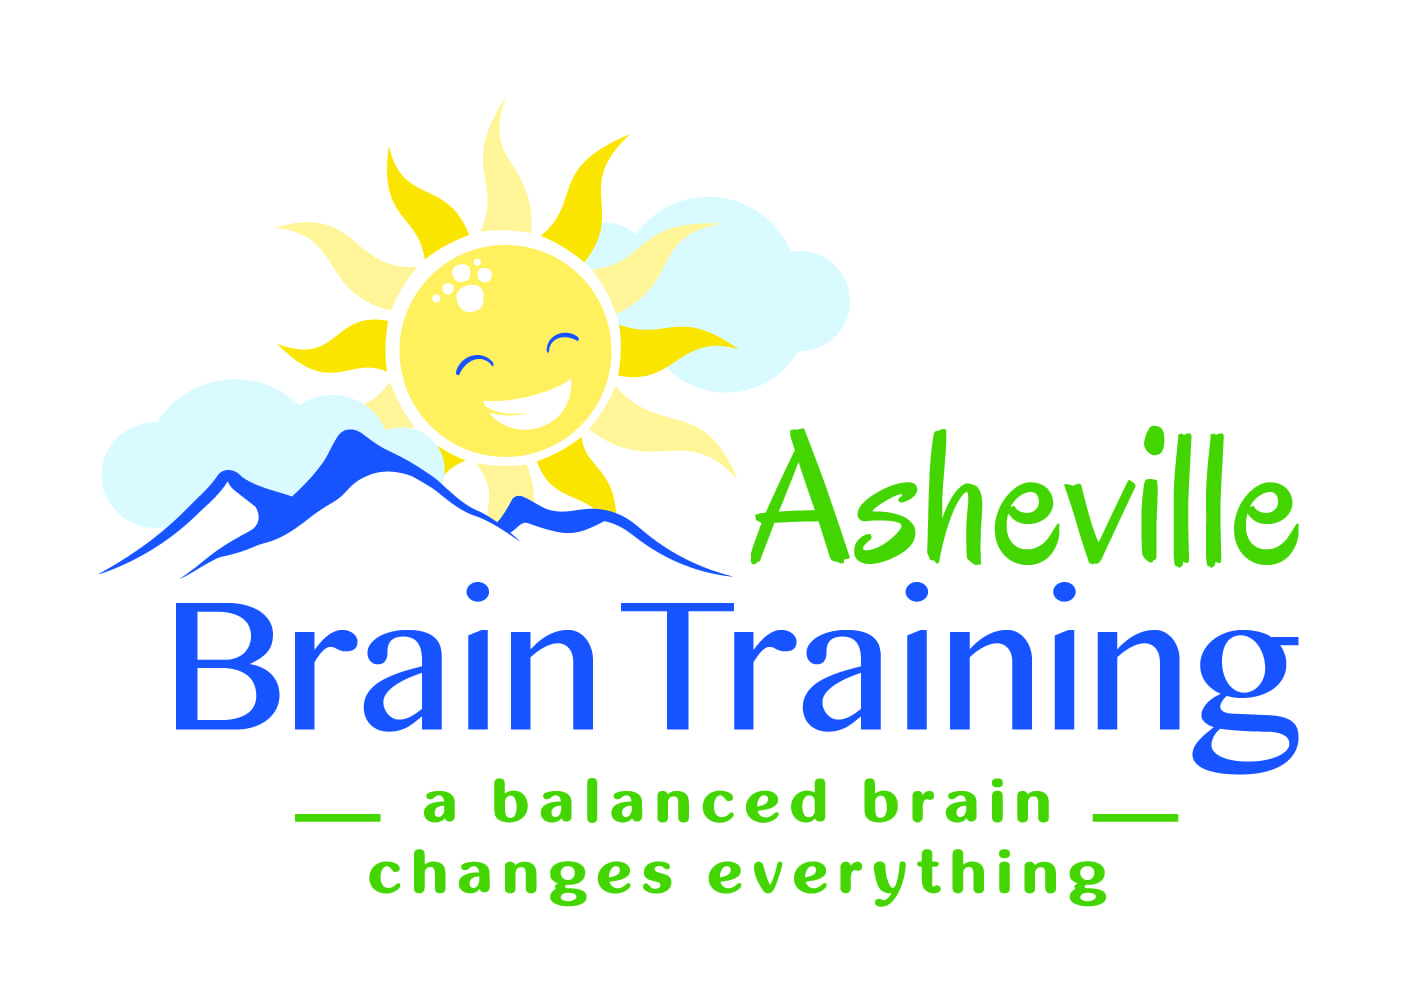 Asheville Brain Training logo